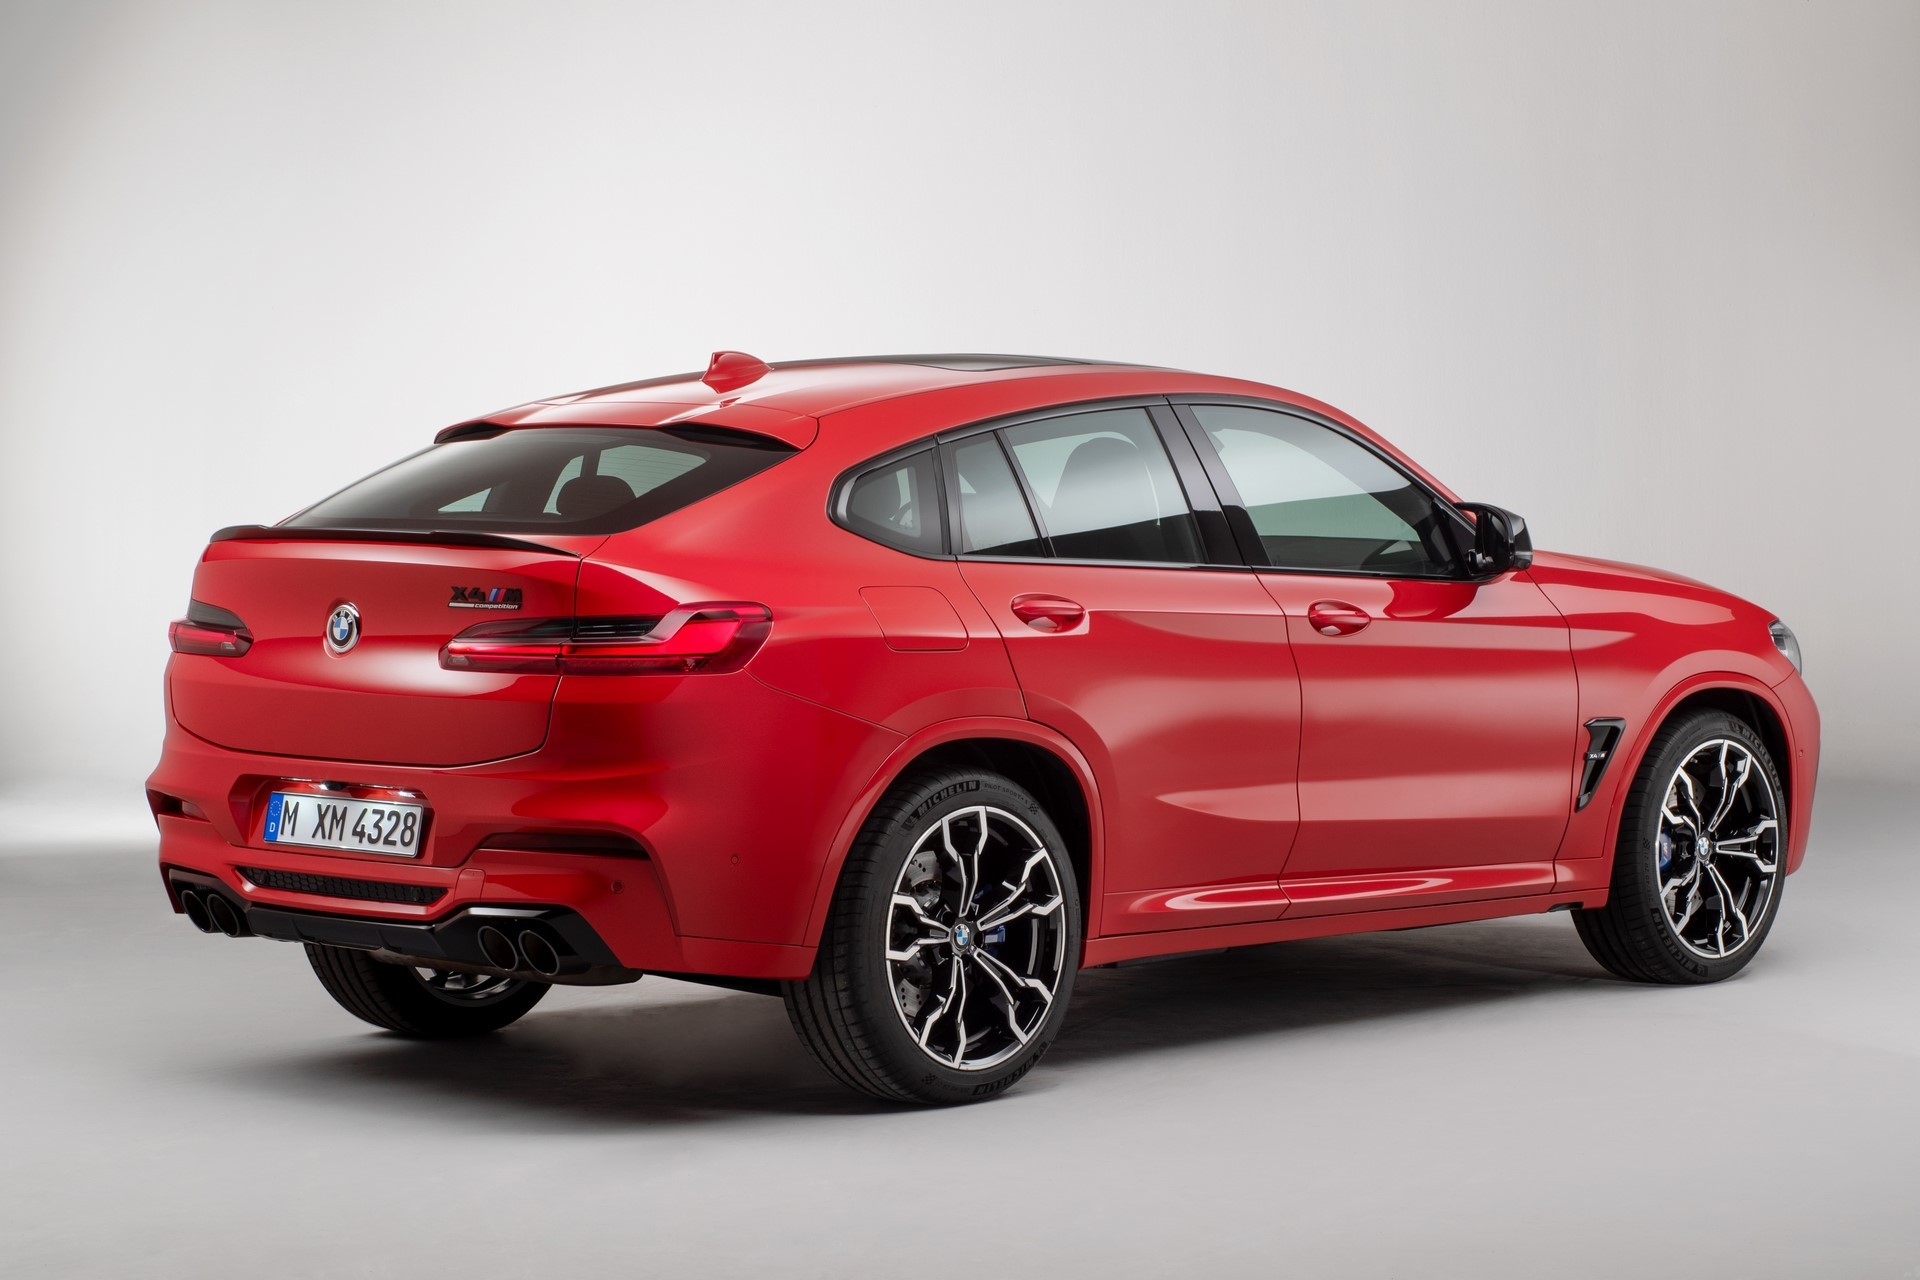 BMW X3 M and X4 M 2019 (211)